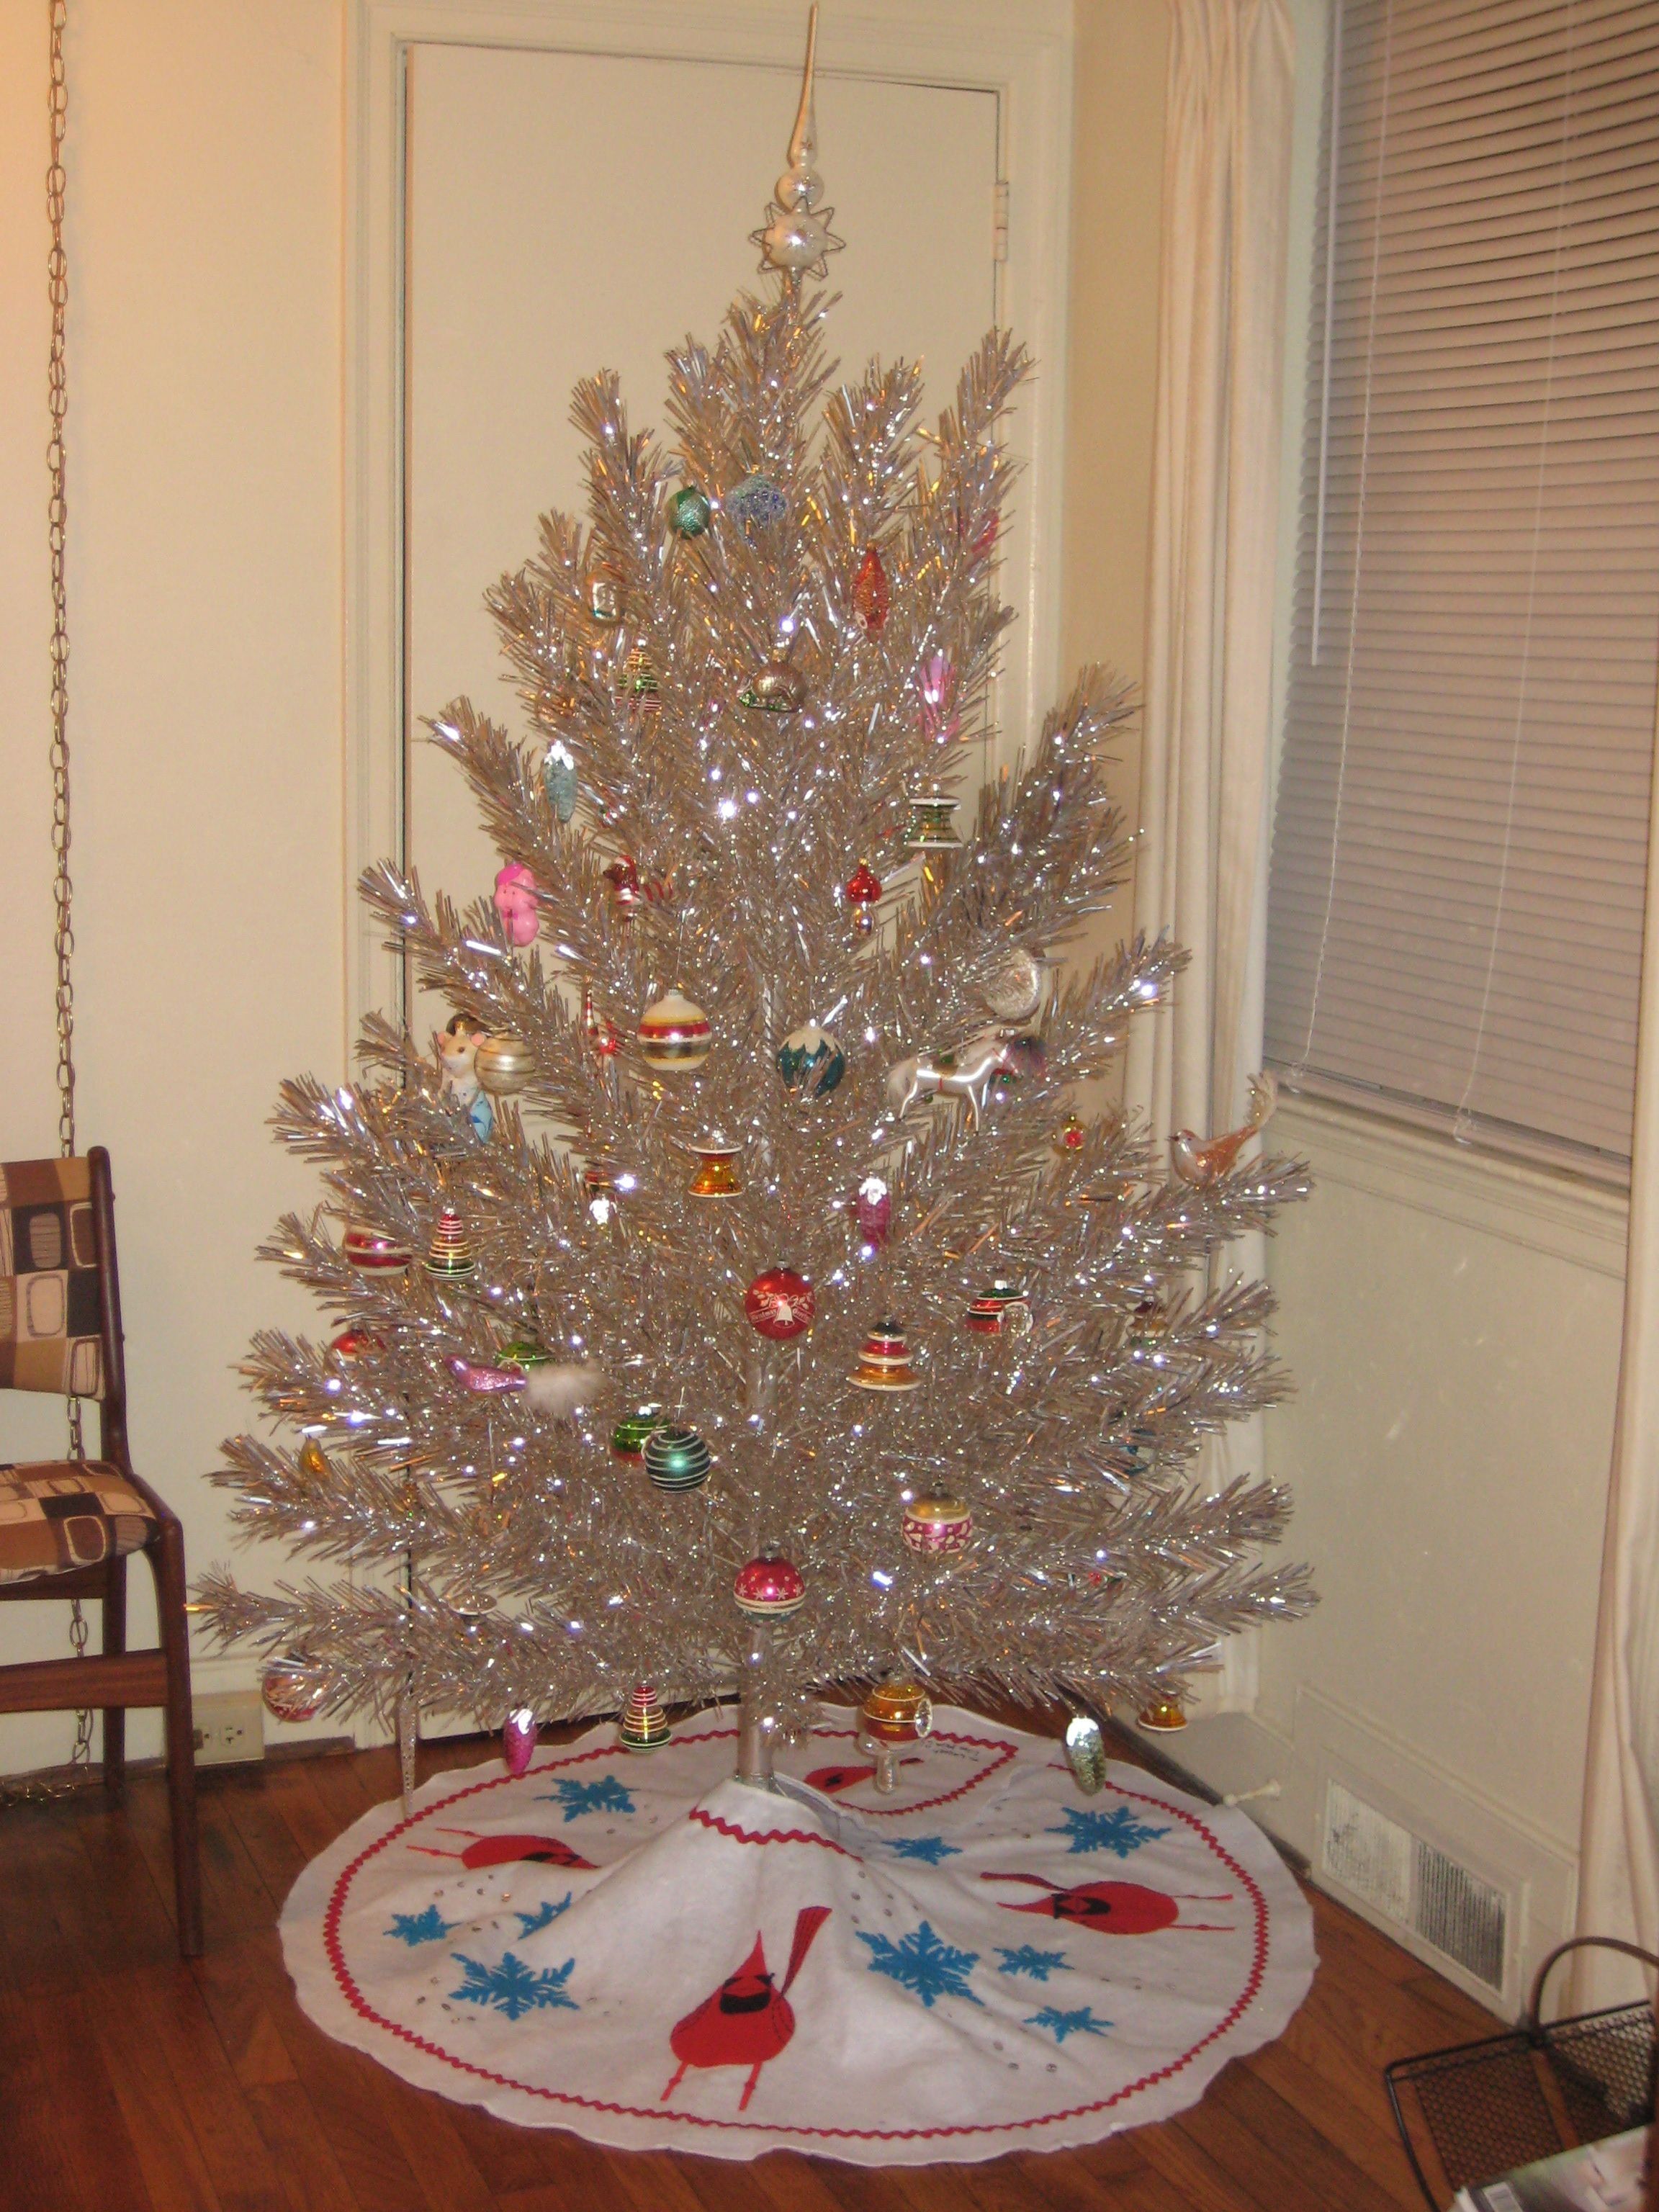 Mid Century Modern Christmas Tree Skirt.Mid Century Tinsel Christmas Tree With Handmade Tree Skirt